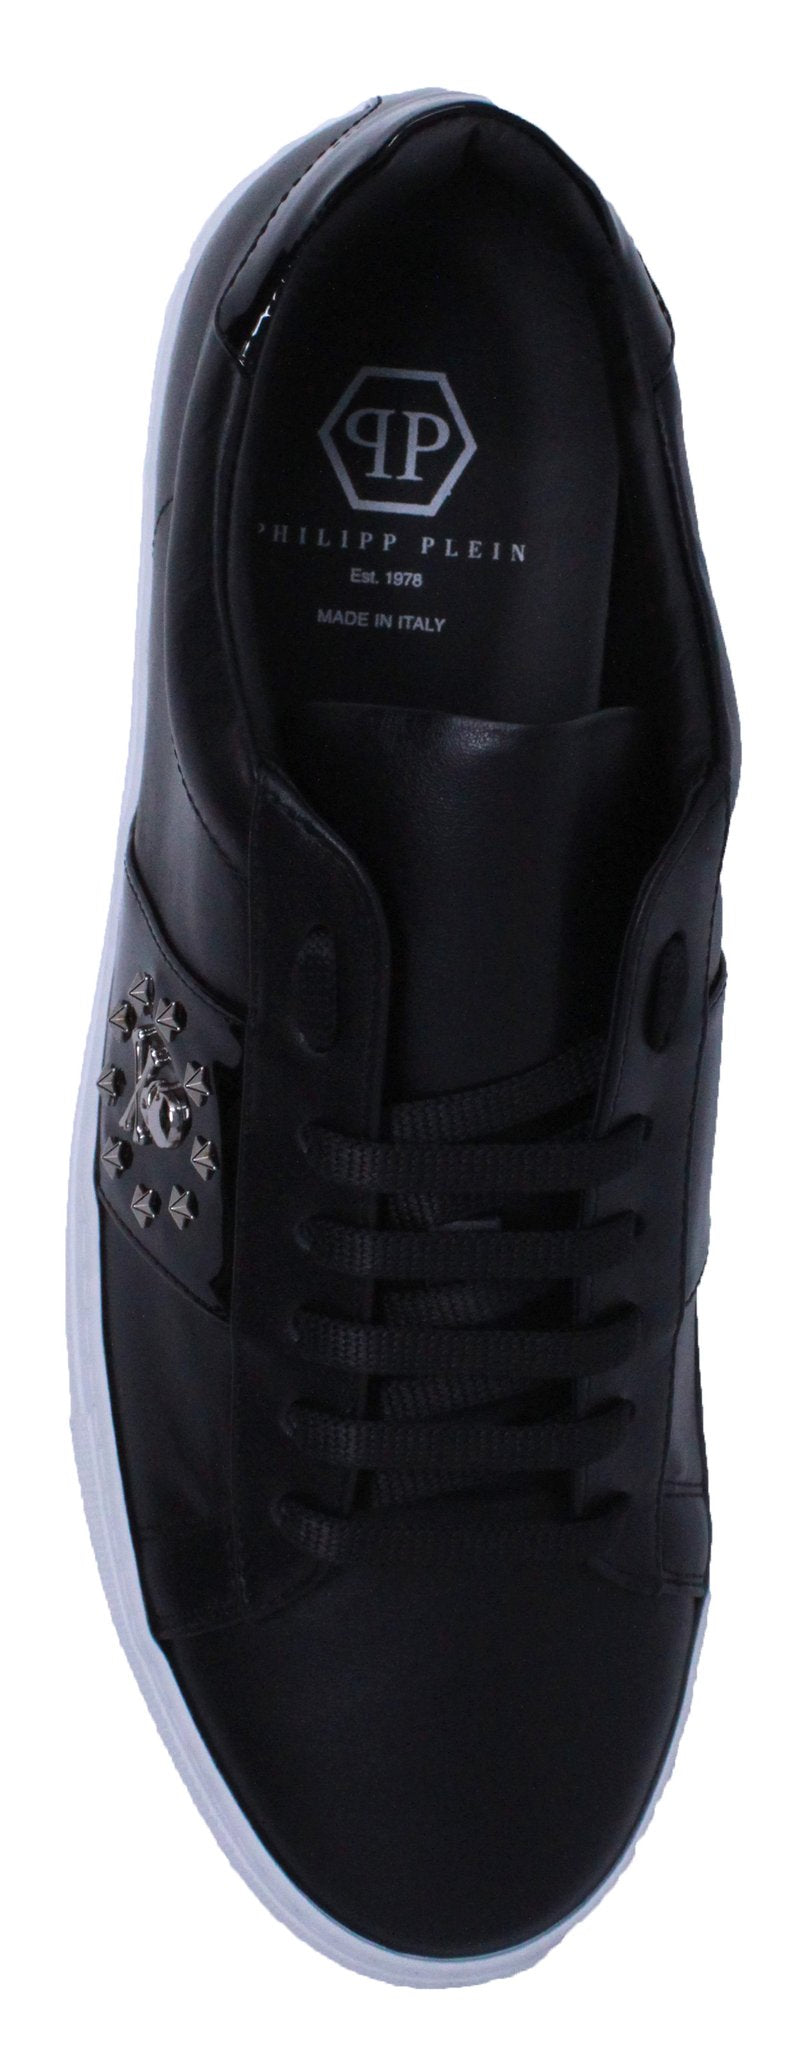 "Philipp Plein MSC1580 02 ""Edwo"" Black Sneakers"